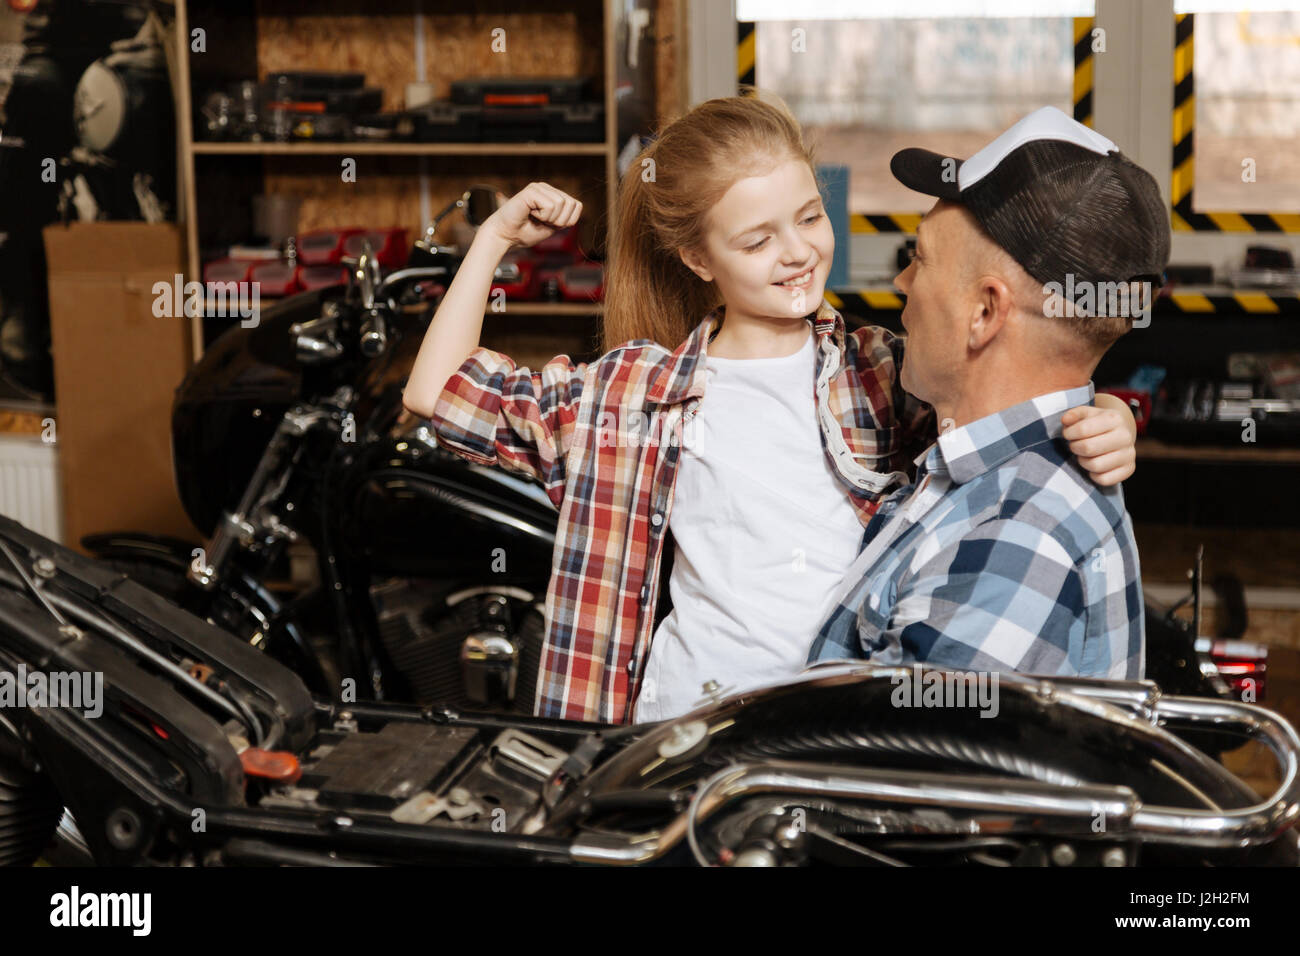 Cheerful sincere guy adoring his daughter - Stock Image